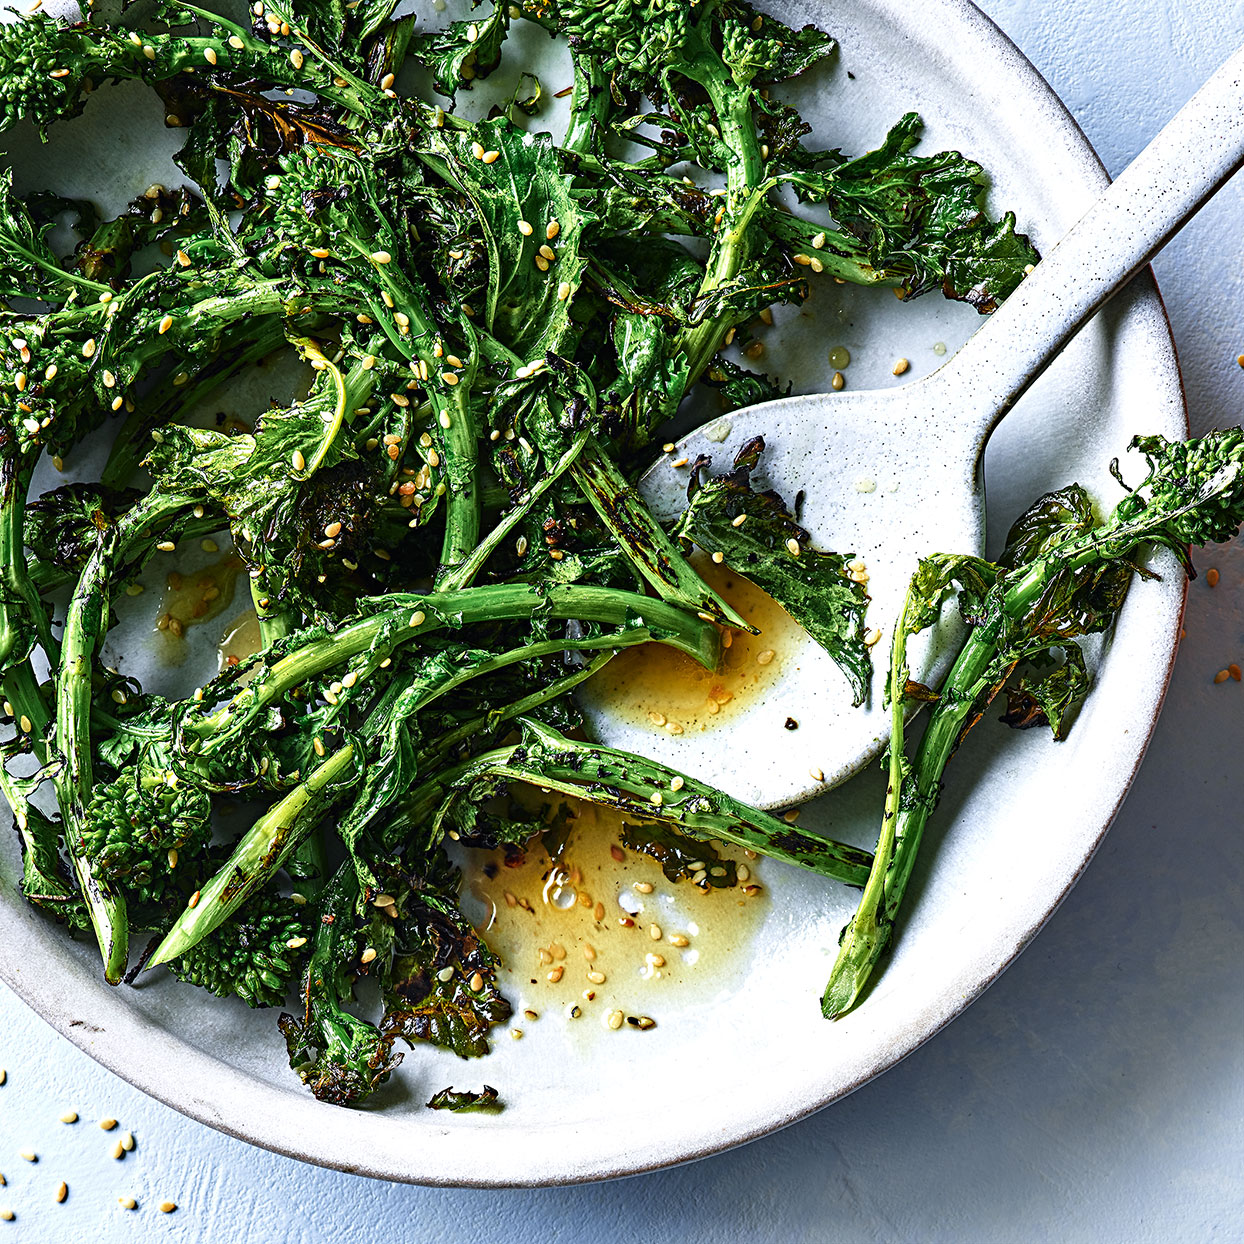 You can go without using oil if you are cooking broccoli rabe in the dry heat of a skillet. It adds a nice sear to the oranges as well. Seasoned with toasty sesame, this healthy vegetable side dish is an easy flavor upgrade.